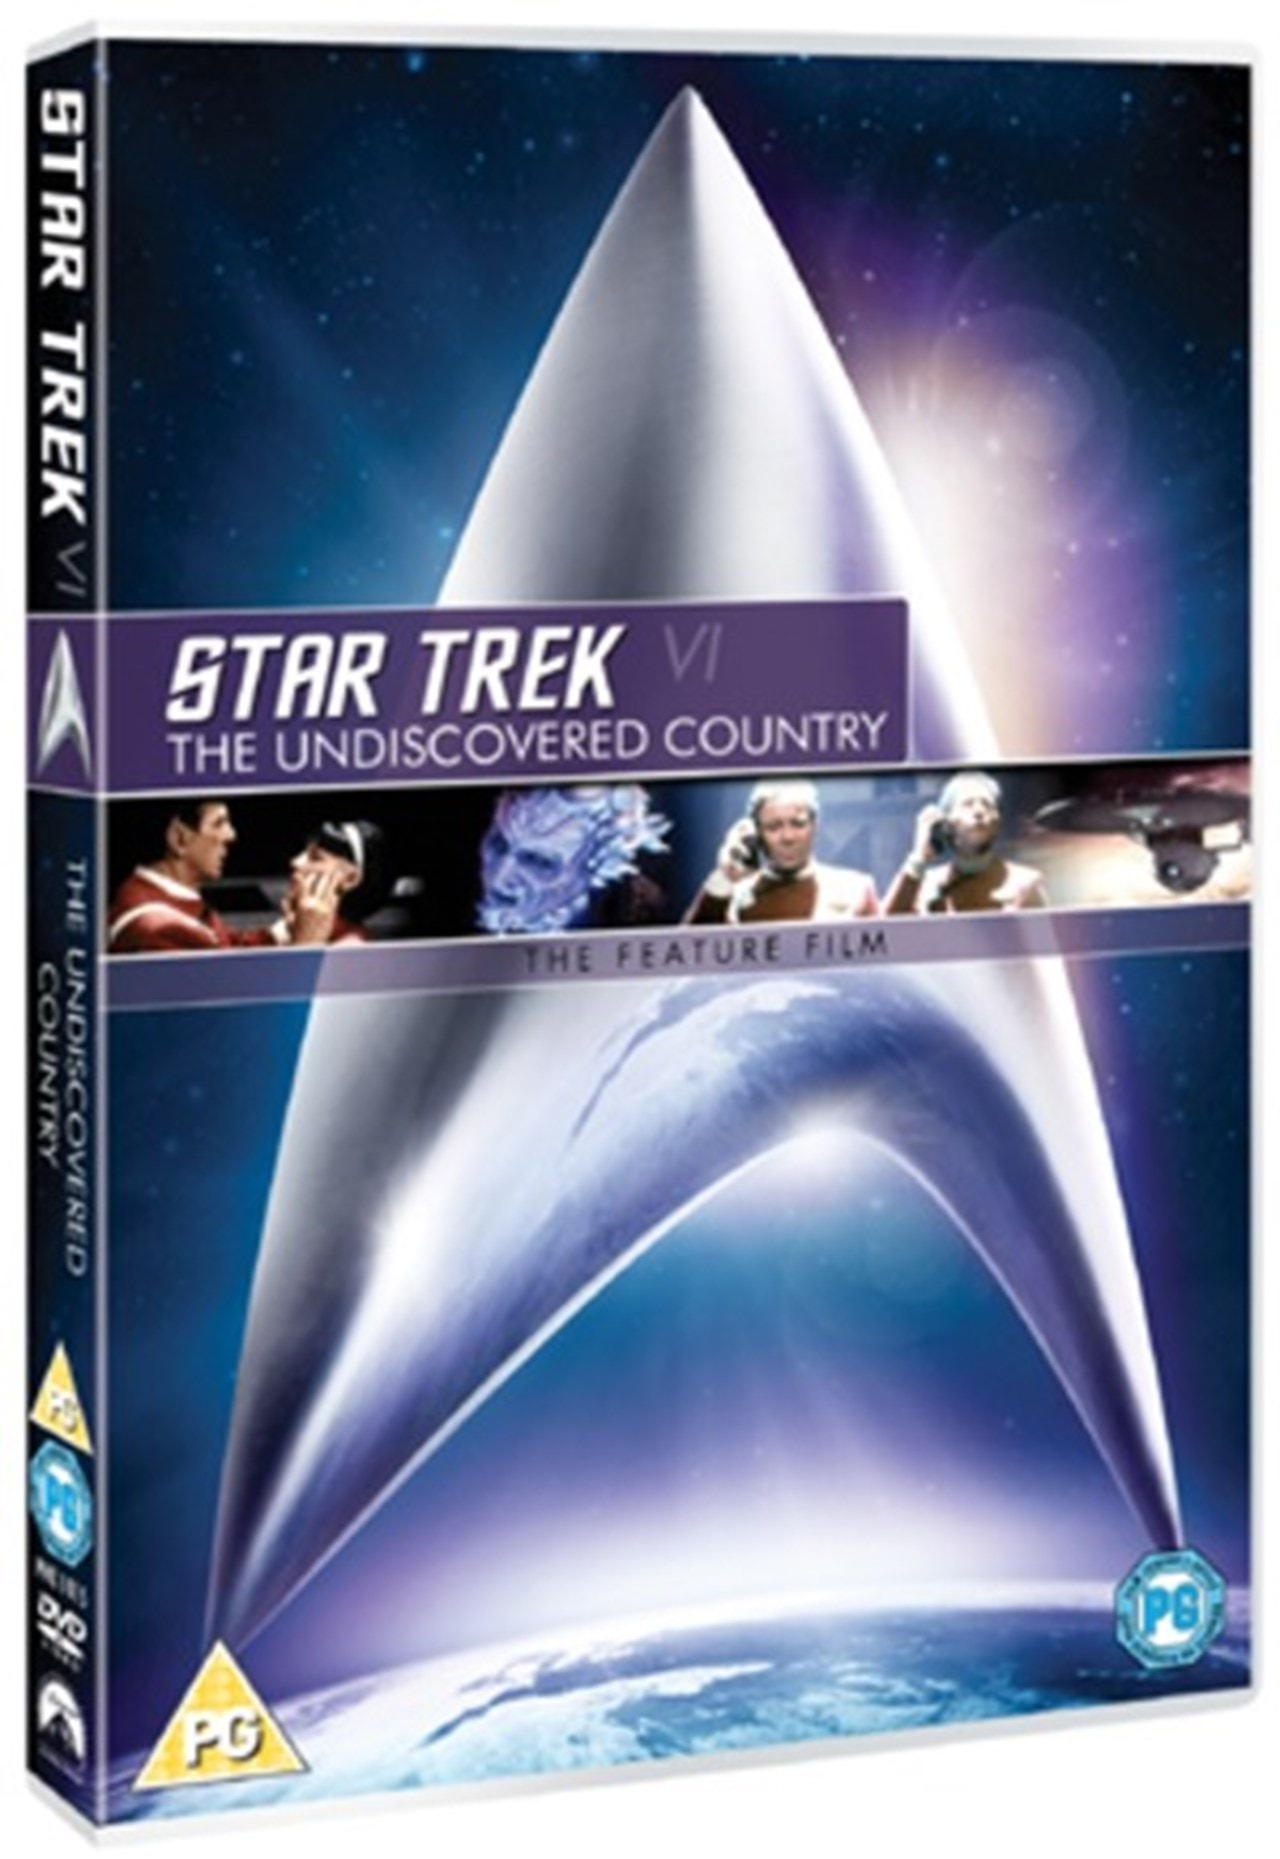 Star Trek 6 - The Undiscovered Country - 1